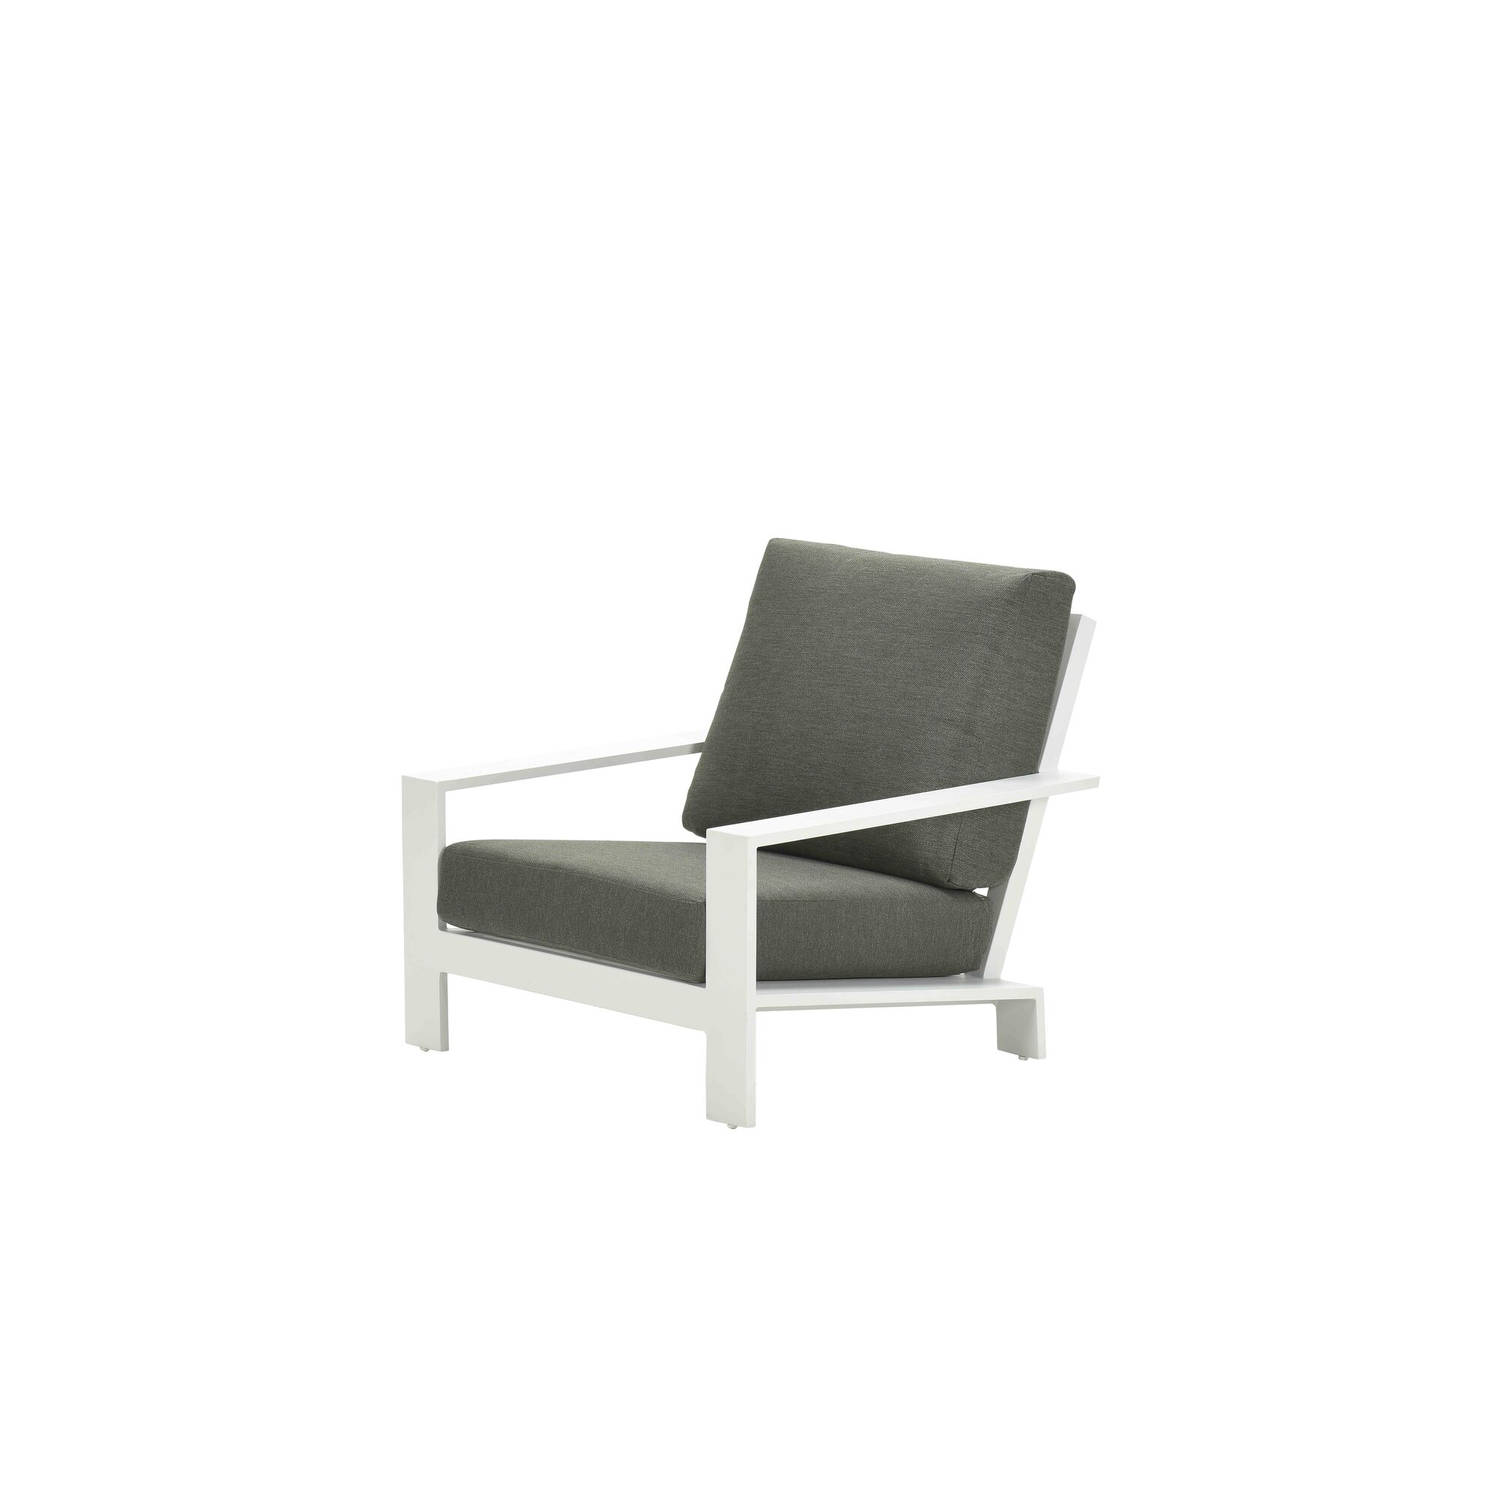 Garden Impressions Lincoln Lounge Fauteuil - Mat Wit/ Moss Green